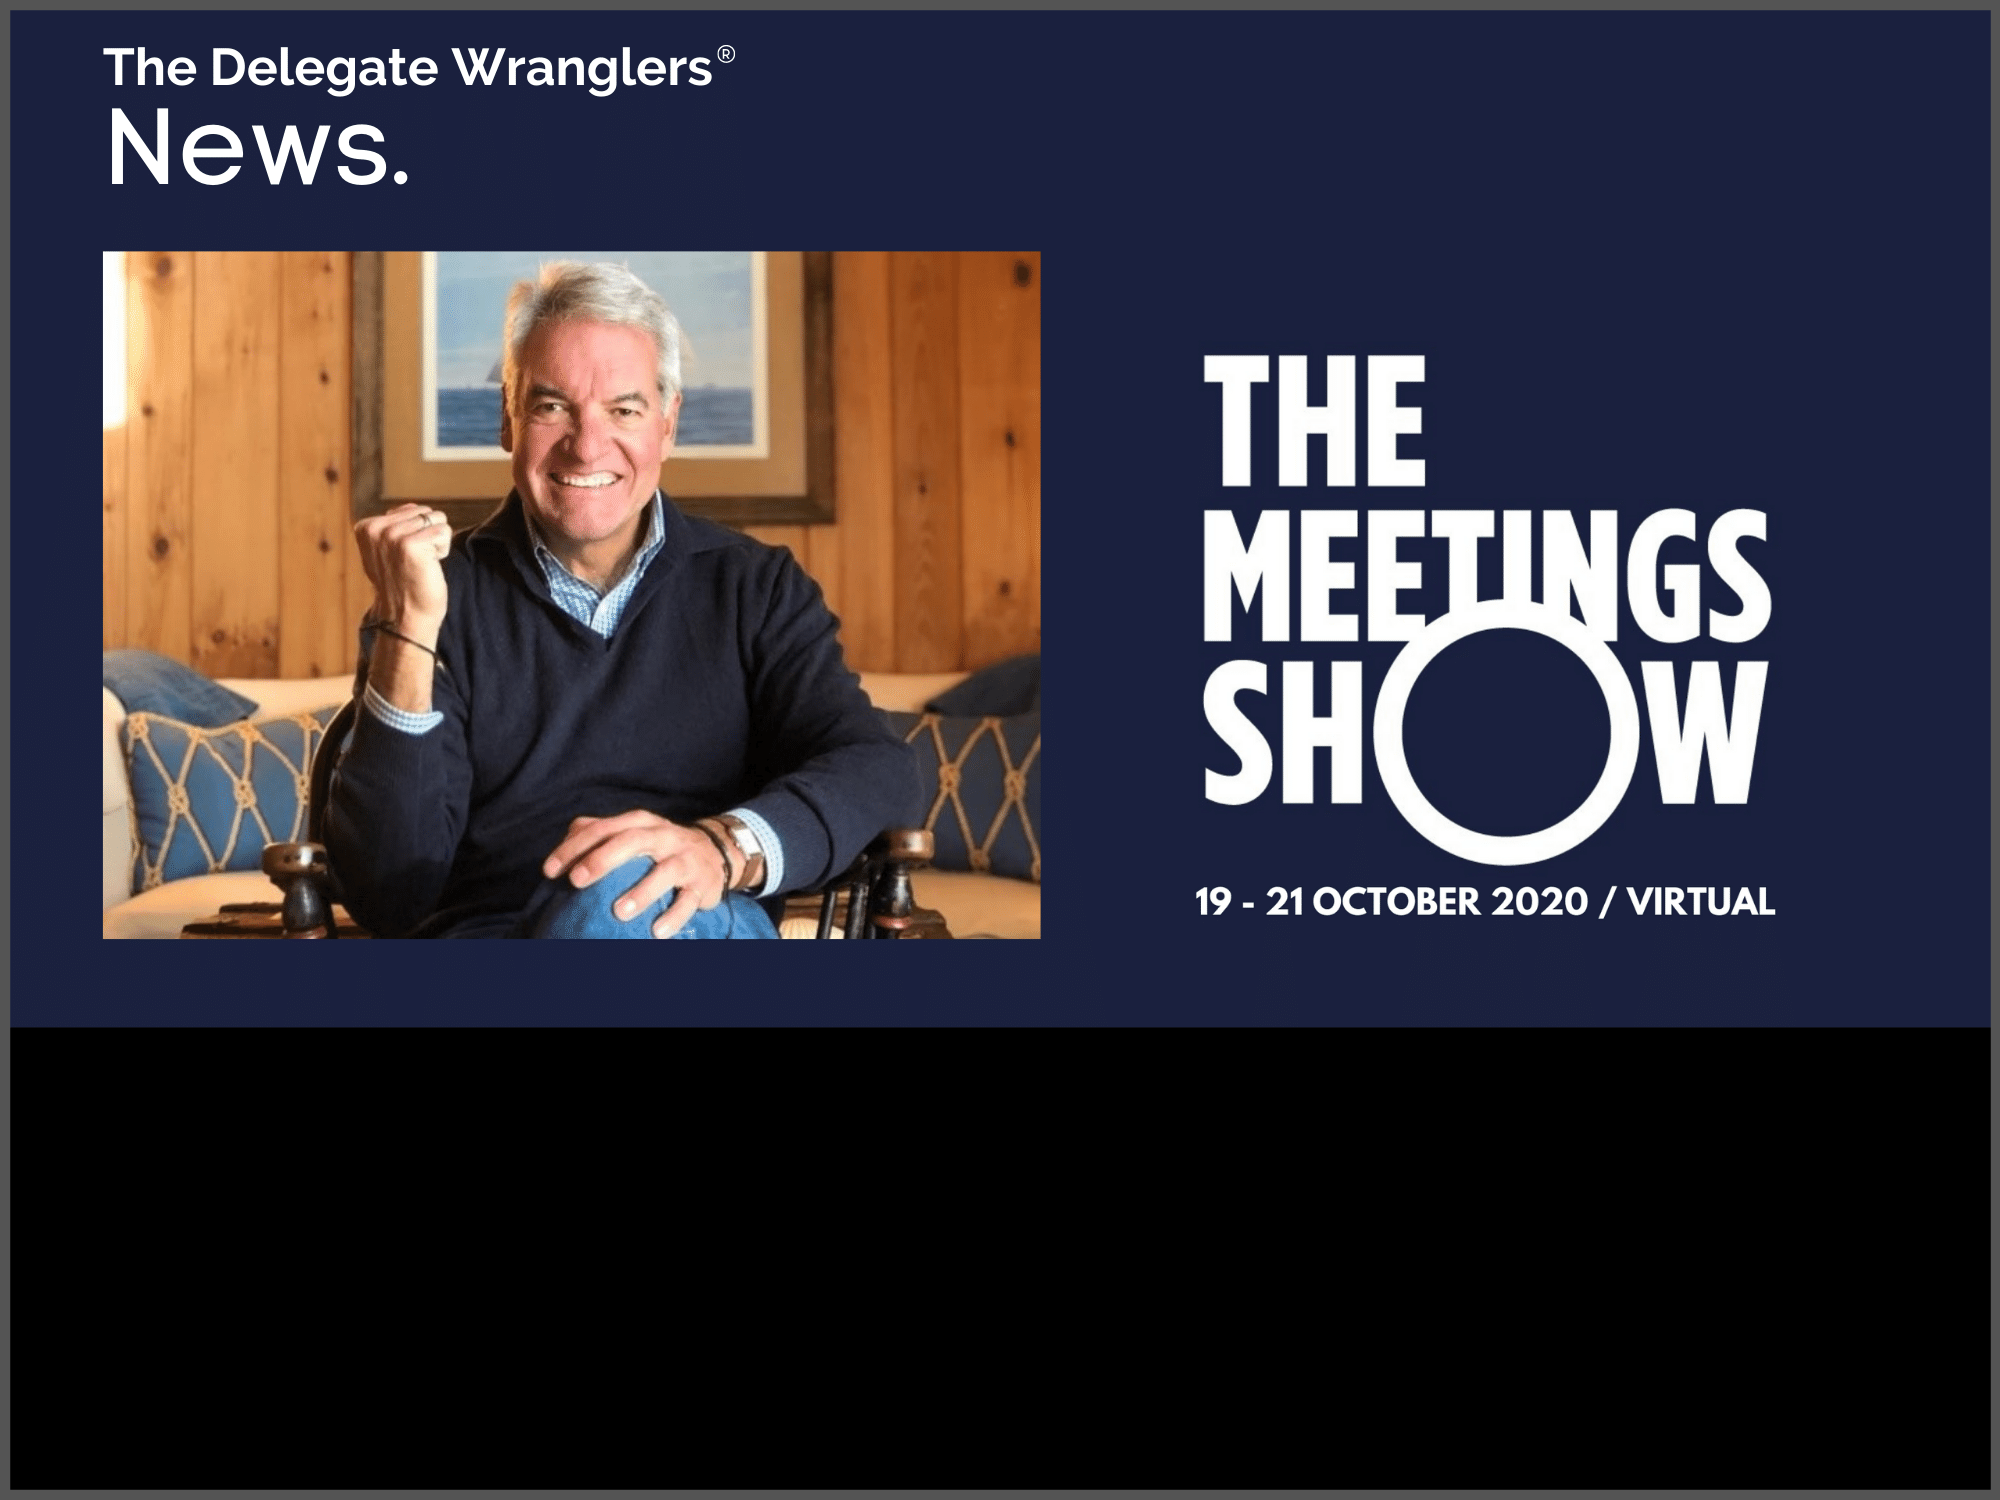 Looking ahead to the sizzling final day of The Meetings Show